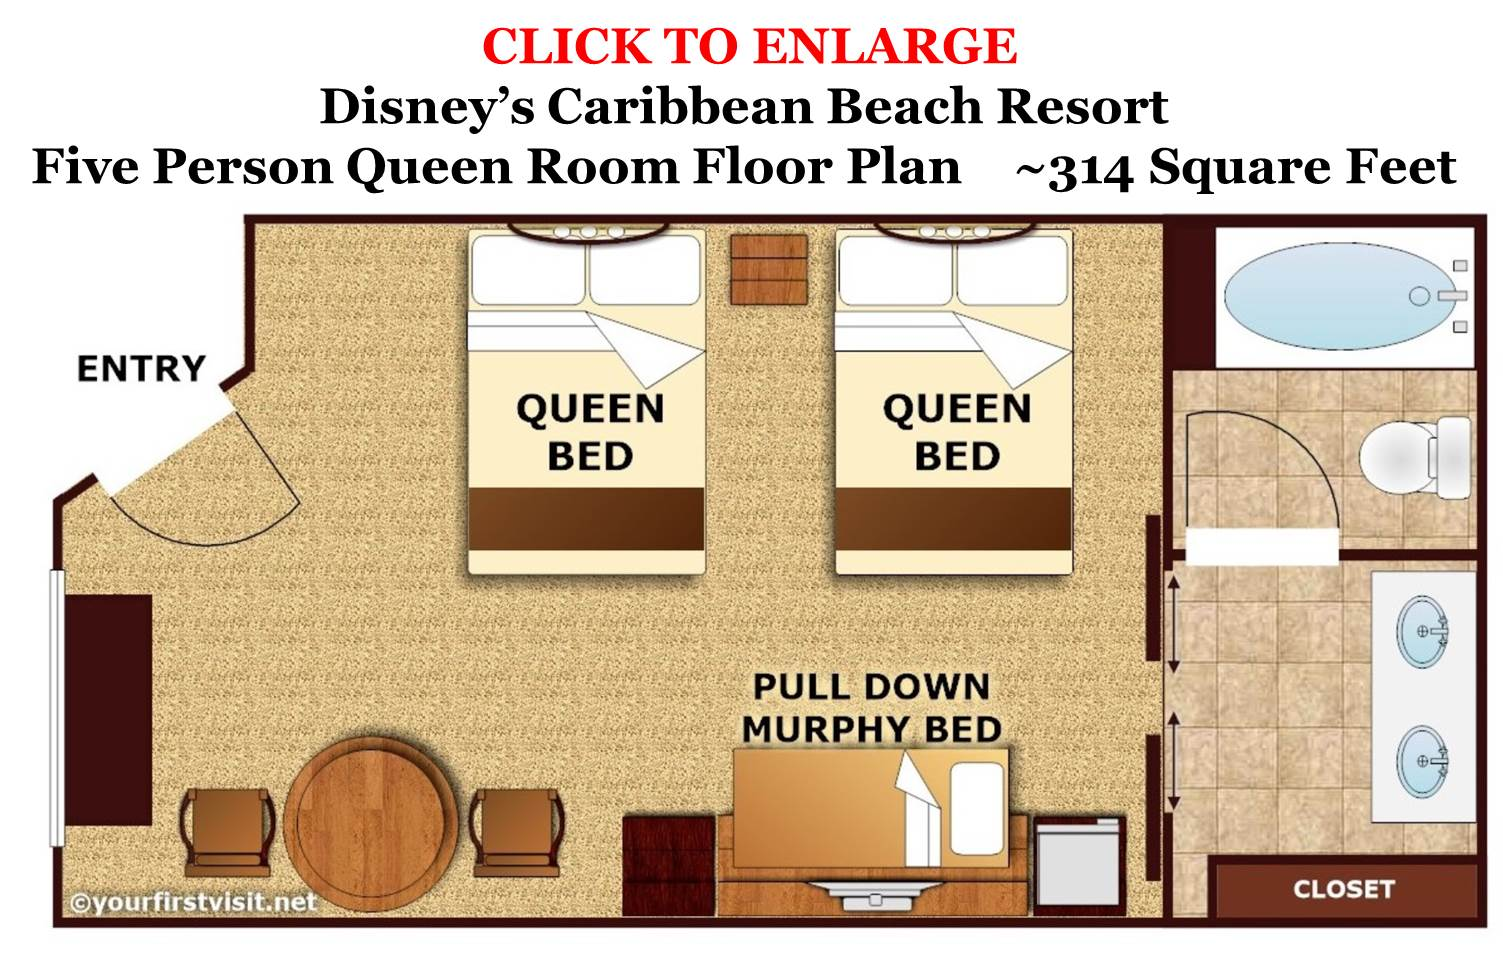 Five Person Queen Room Floor Plan Disney's Caribbean Beach Resort from yourfirstvisit.net